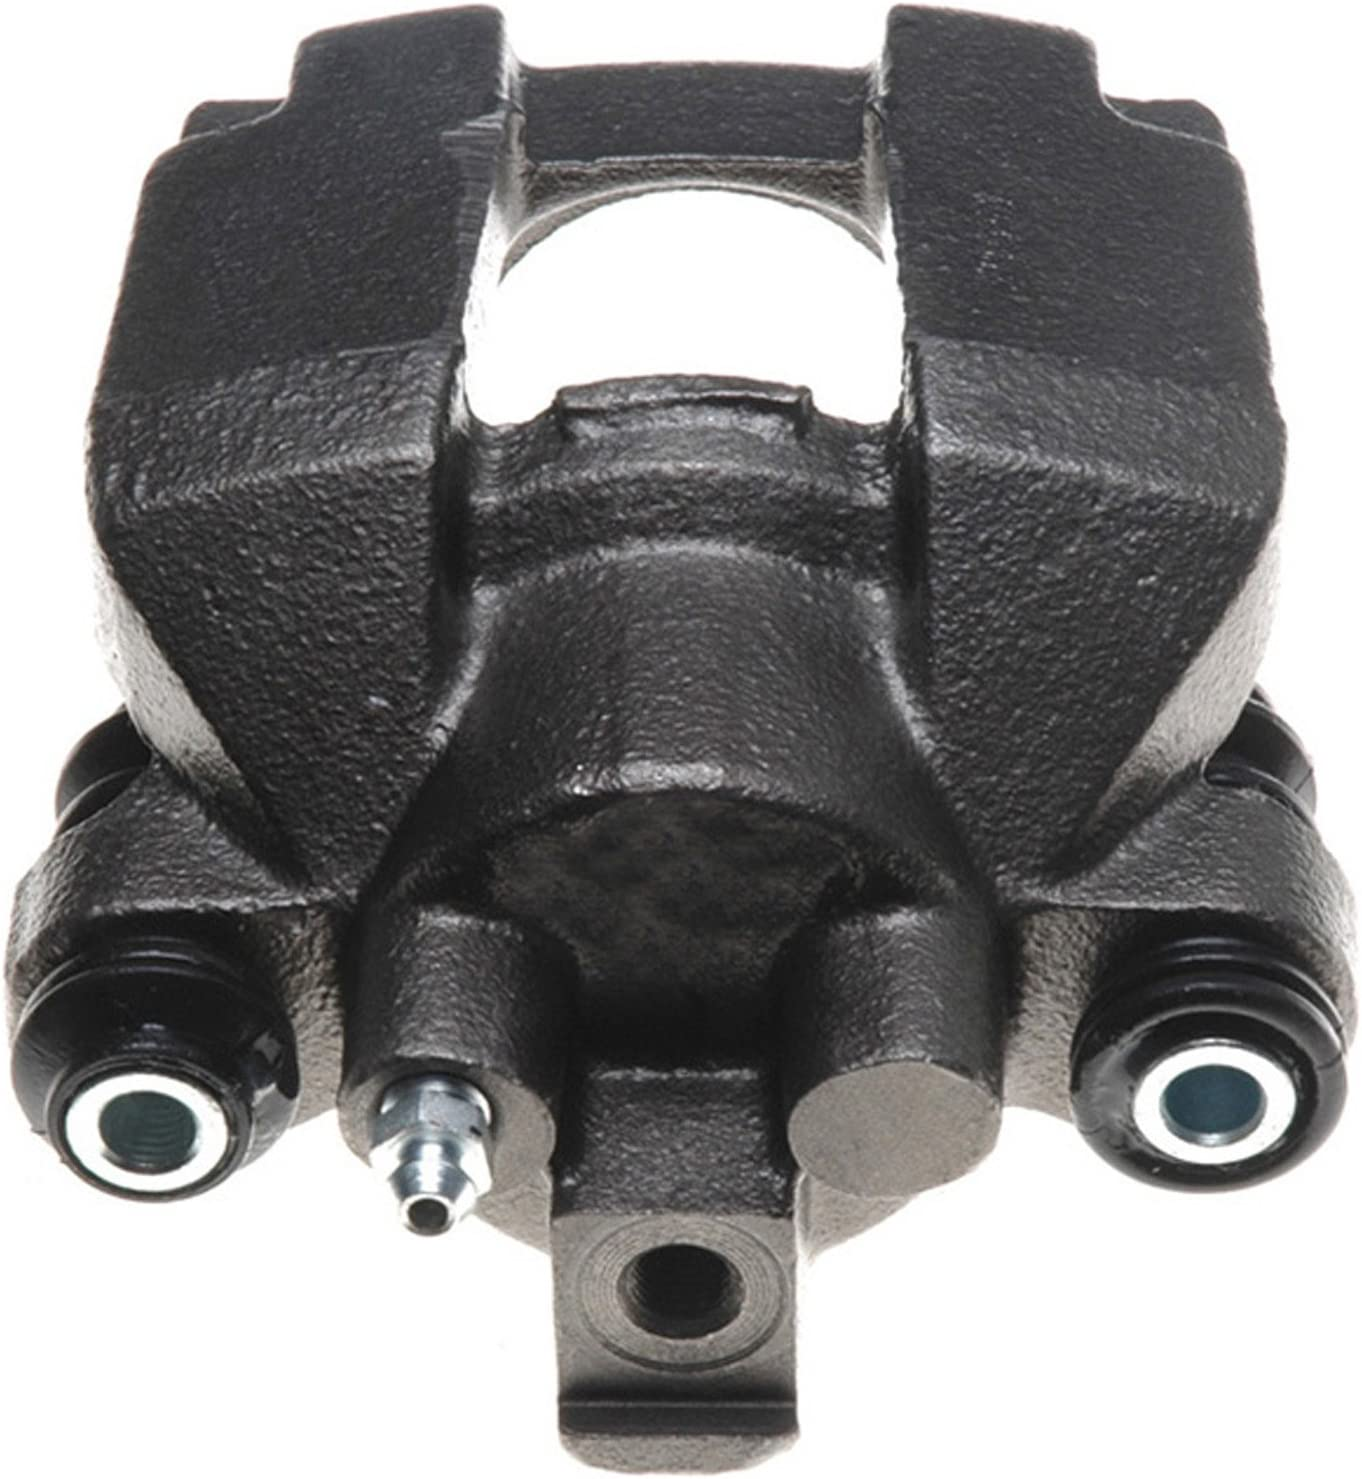 ACDelco 18FR1914 Professional Rear Passenger Side Disc Brake Caliper Assembly without Pads (Friction Ready Non-Coated), Remanufactured